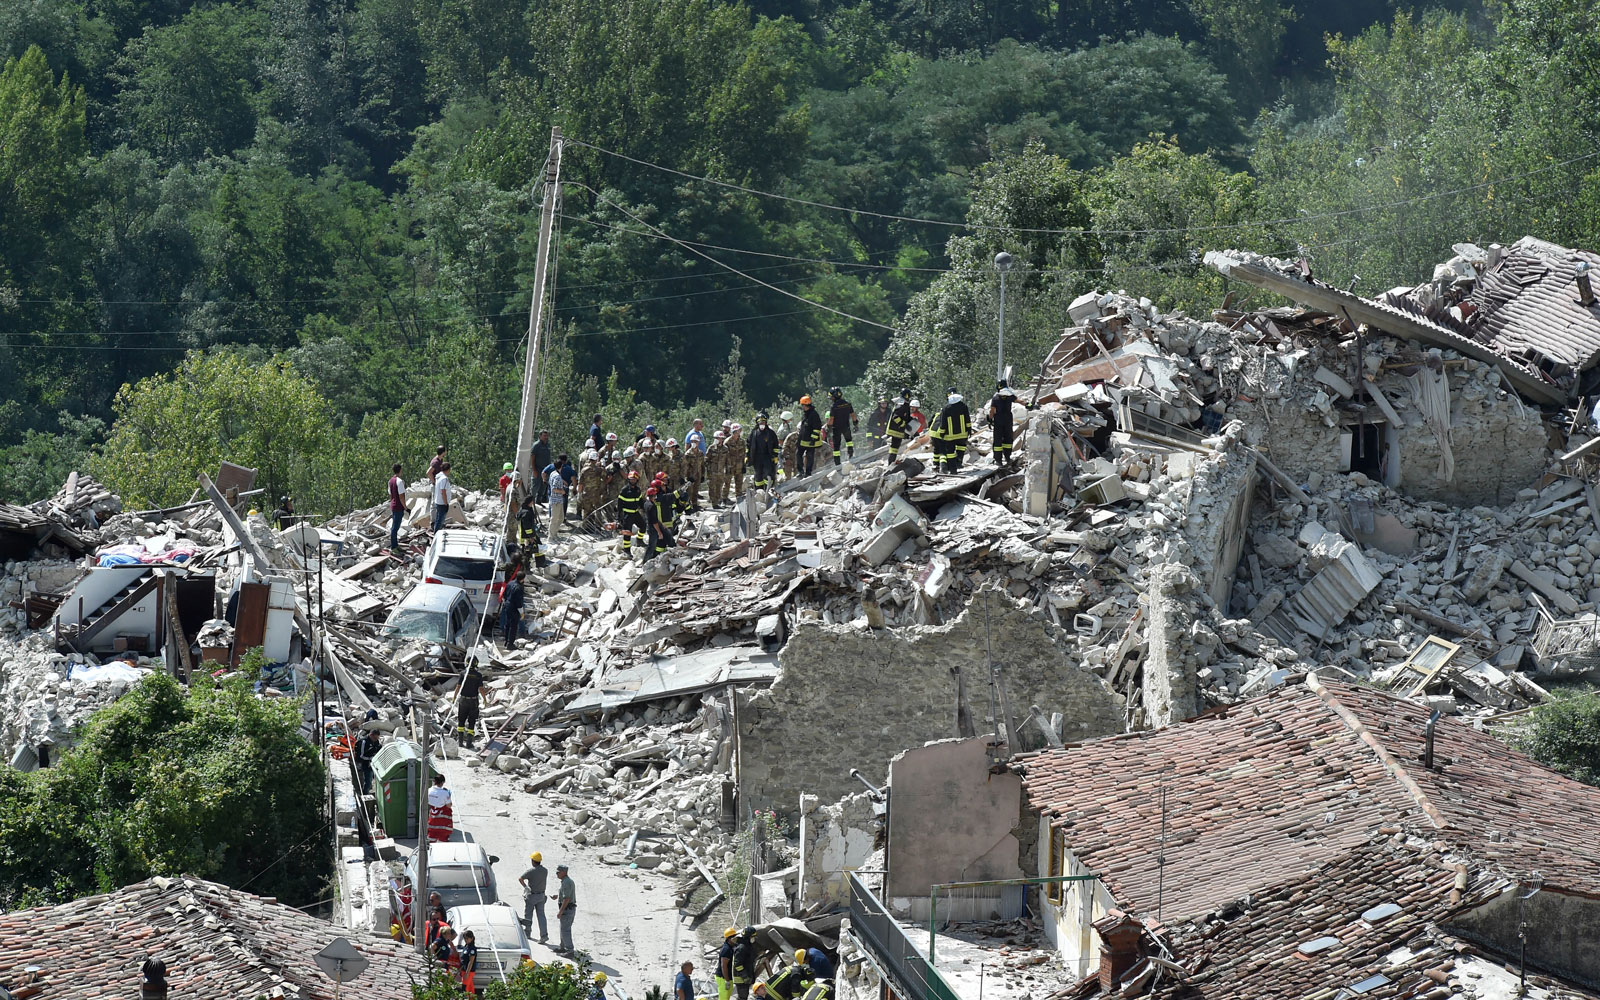 Destruction after an earthquake in central Italy on Aug. 24, 2016.